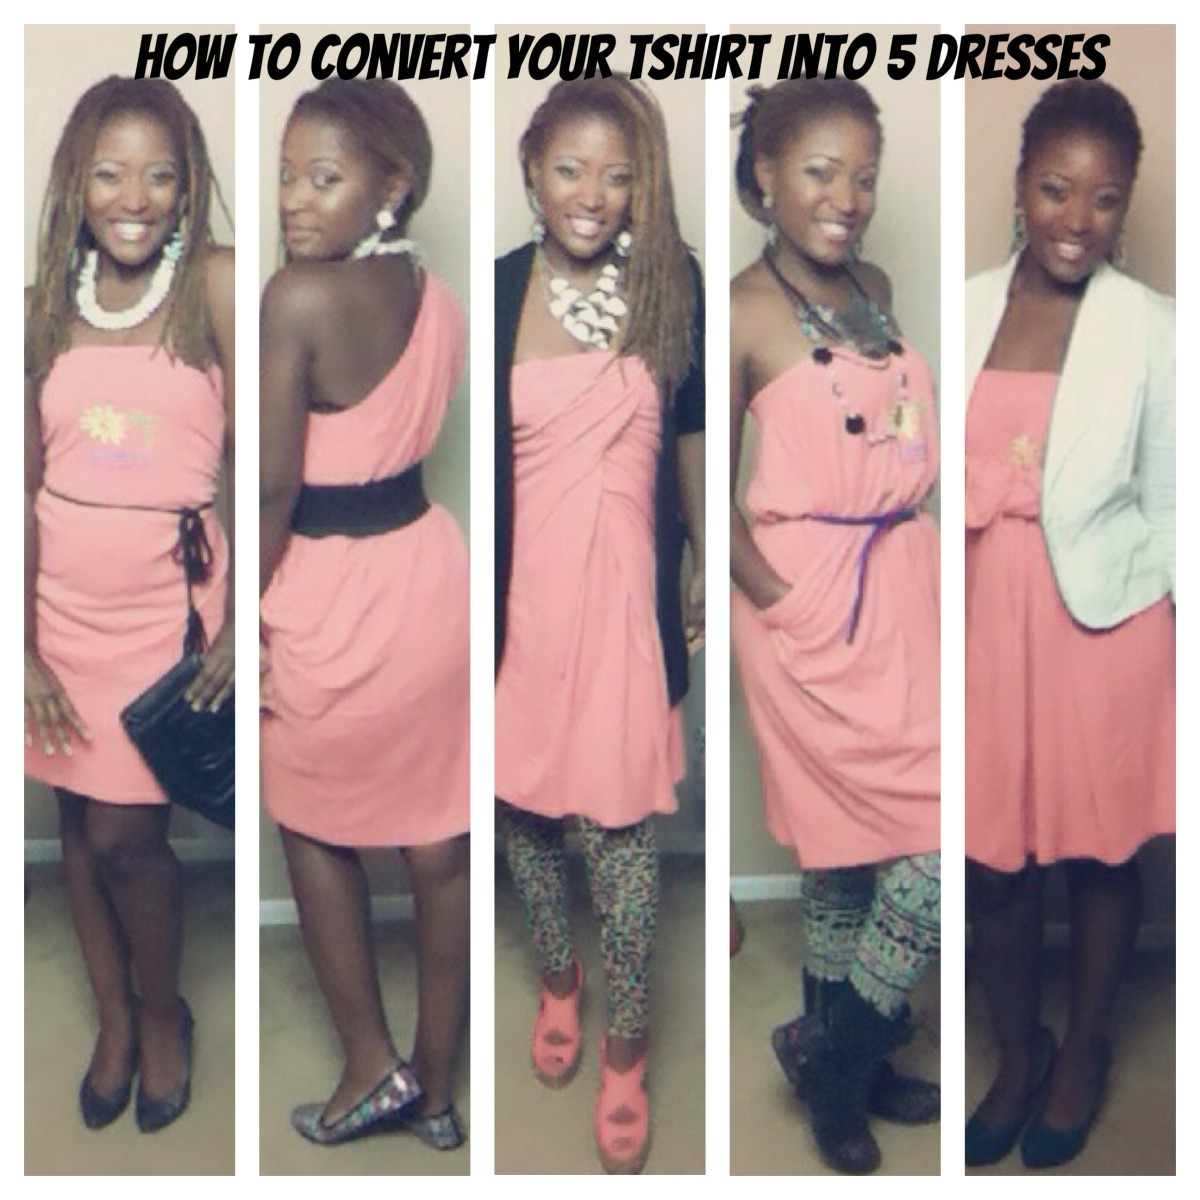 How to Convert a Basic T-Shirt Into 5 Dresses (No Sewing)